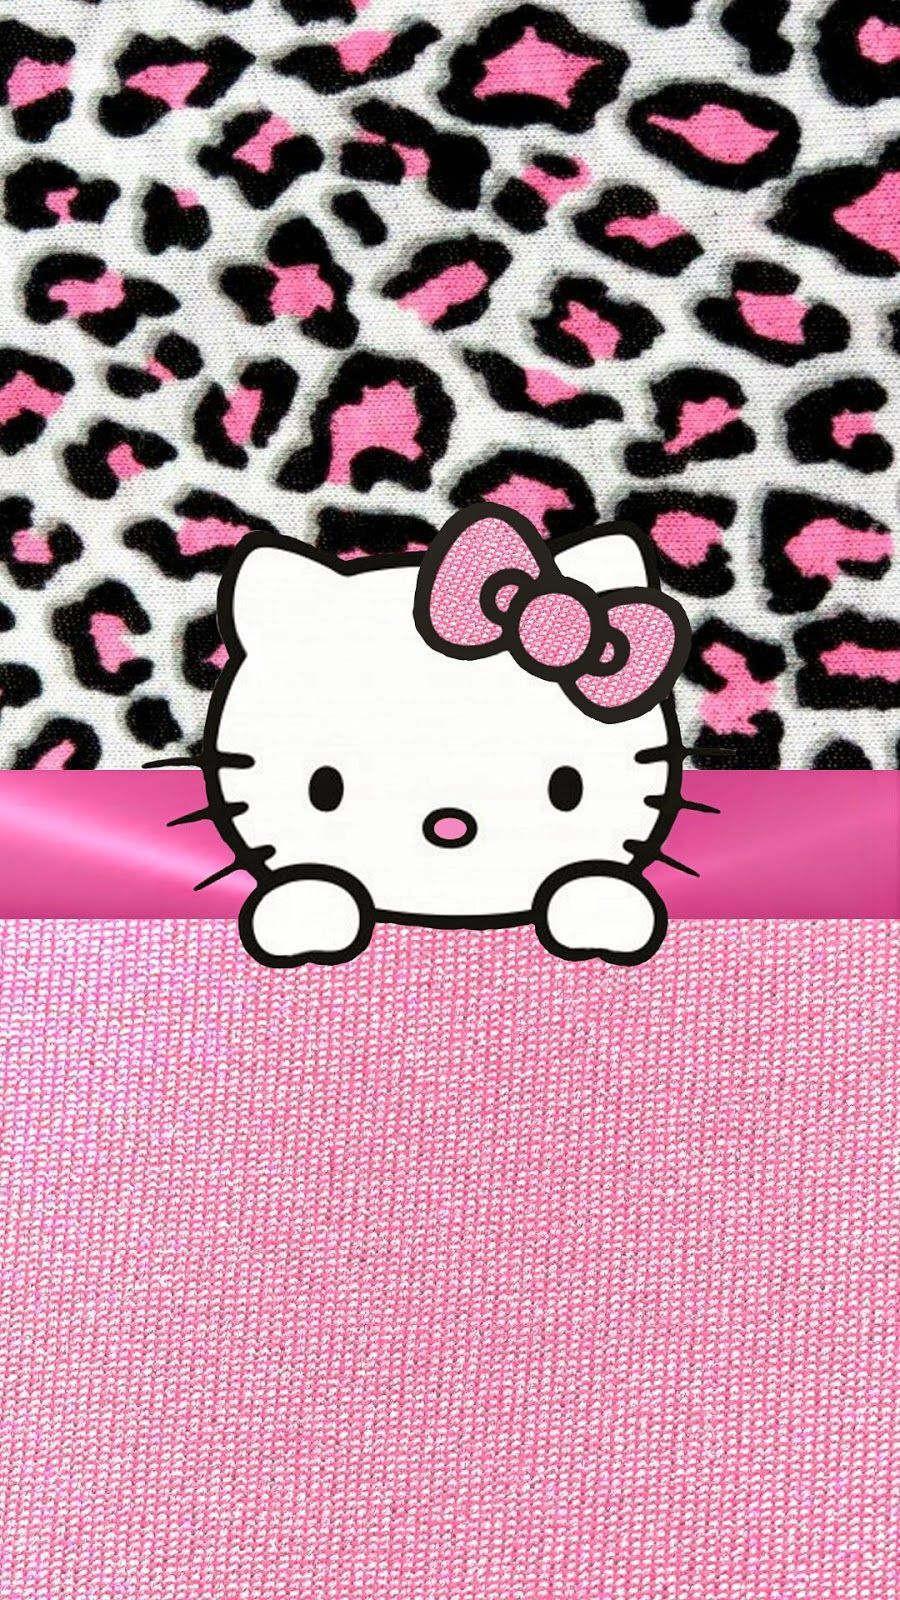 900x1600 PINK HELLO KITTY IPHONE WALLPAPER BACKGROUND | IPHONE WALLPAPER ...